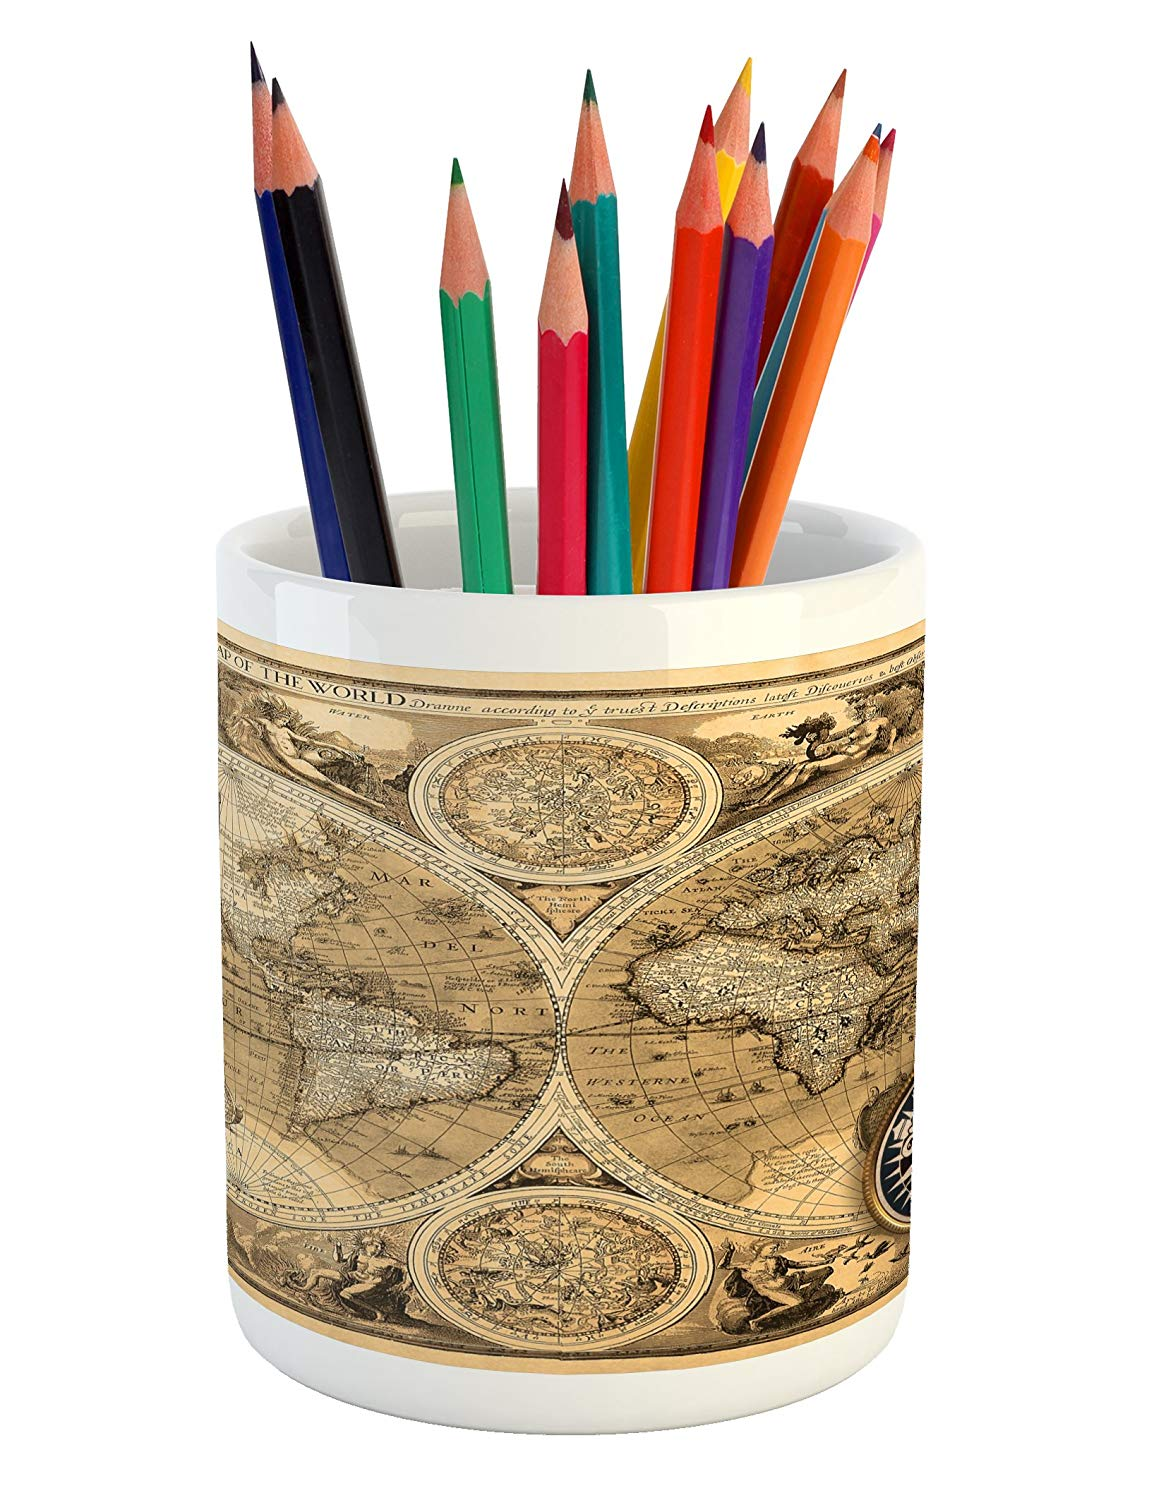 Lunarable World Map Pencil Pen Holder, Old Chart with Countries Oceans Continents Atlas Nostalgic Antique Image, Printed Ceramic Pencil Pen Holder for Desk Office Accessory, Sand Brown Umber